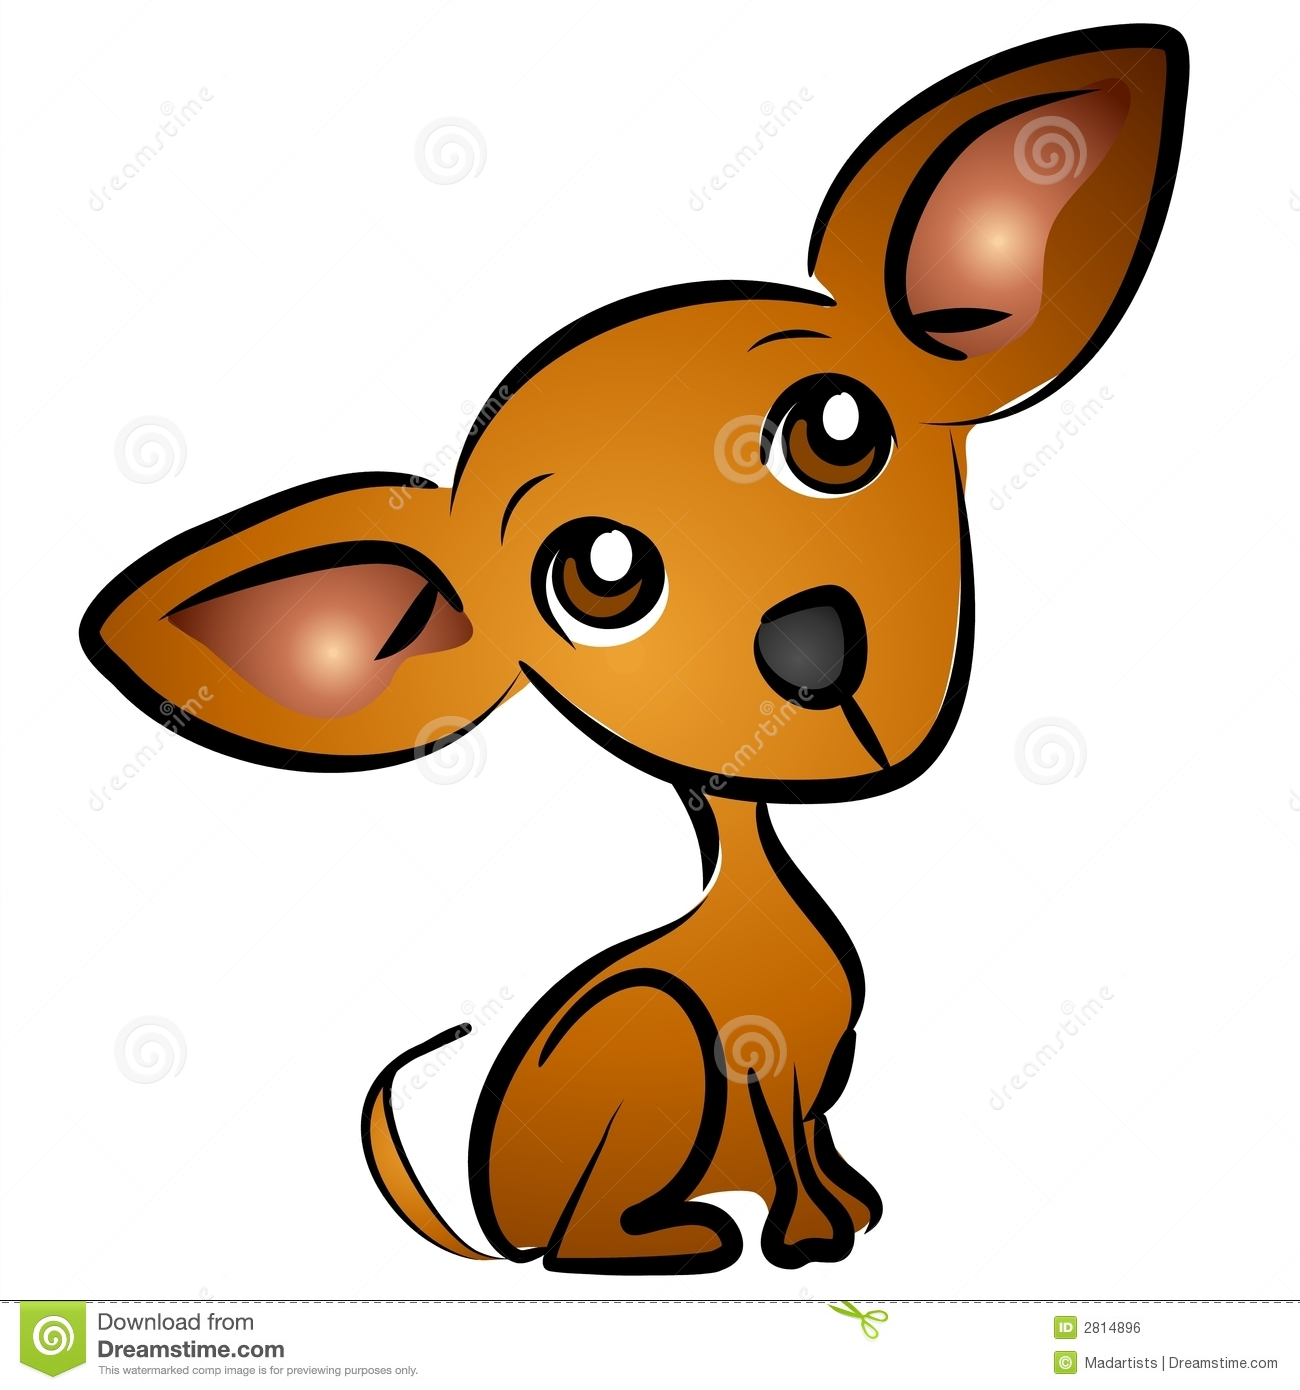 Cartoon Dog Big Head Small Body